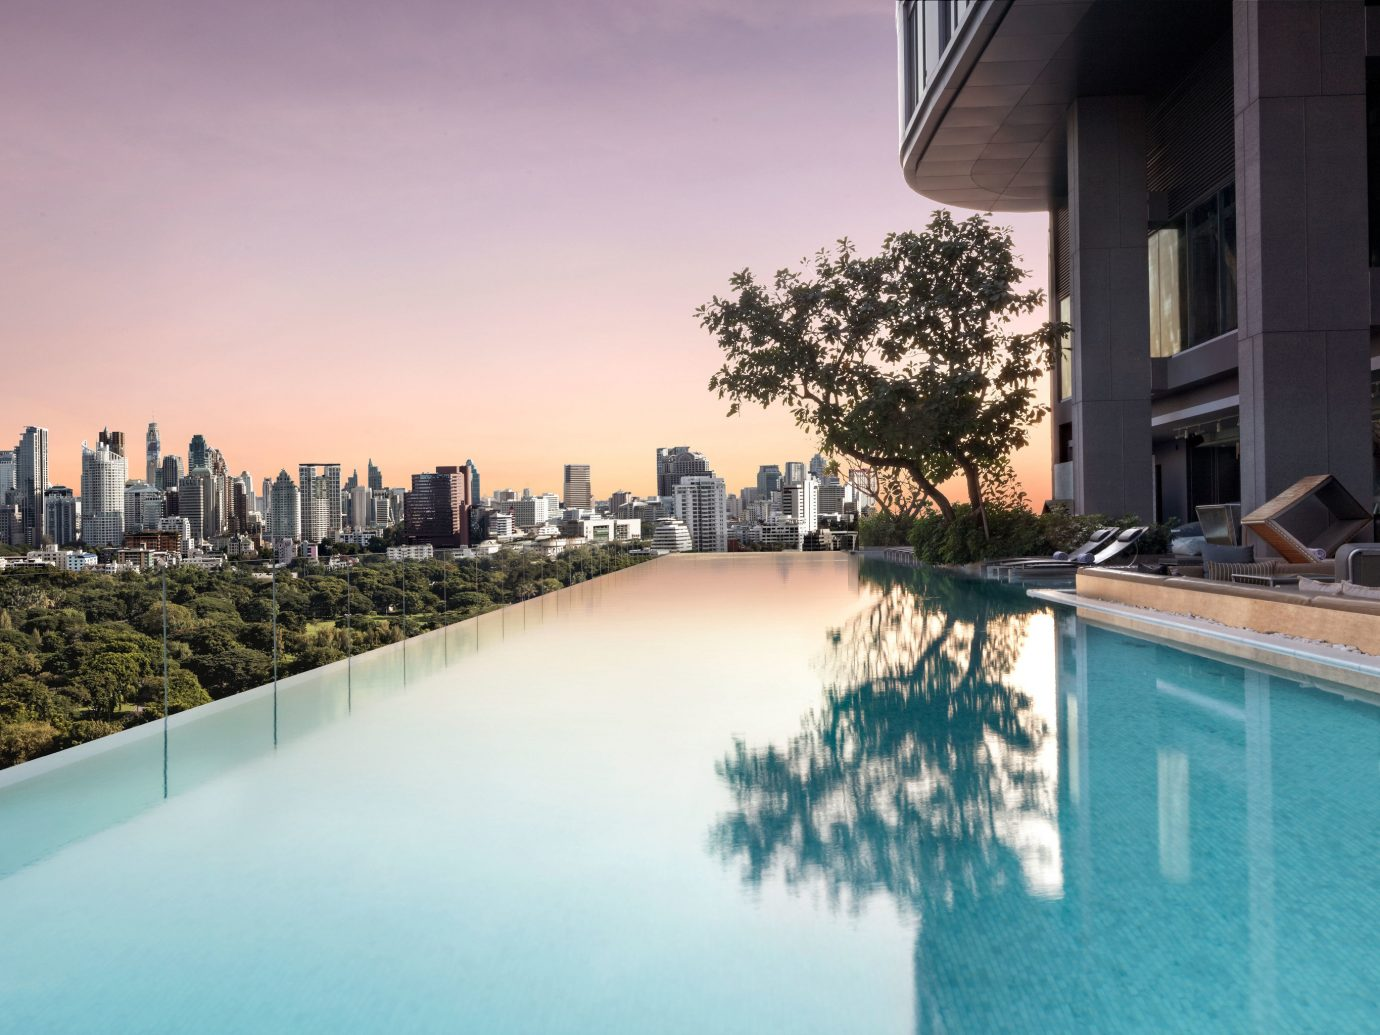 Trip Ideas sky outdoor swimming pool building reflection vacation reflecting pool estate condominium Downtown cityscape Resort